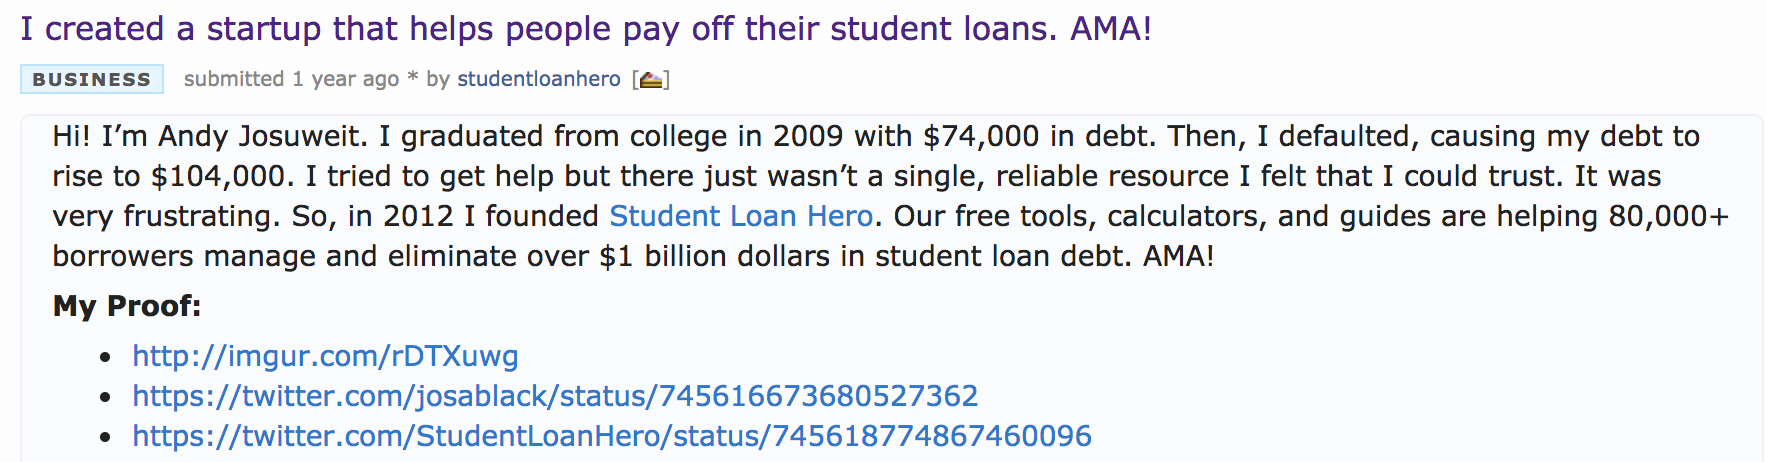 student loan hero reddit AMA one way to get web traffic